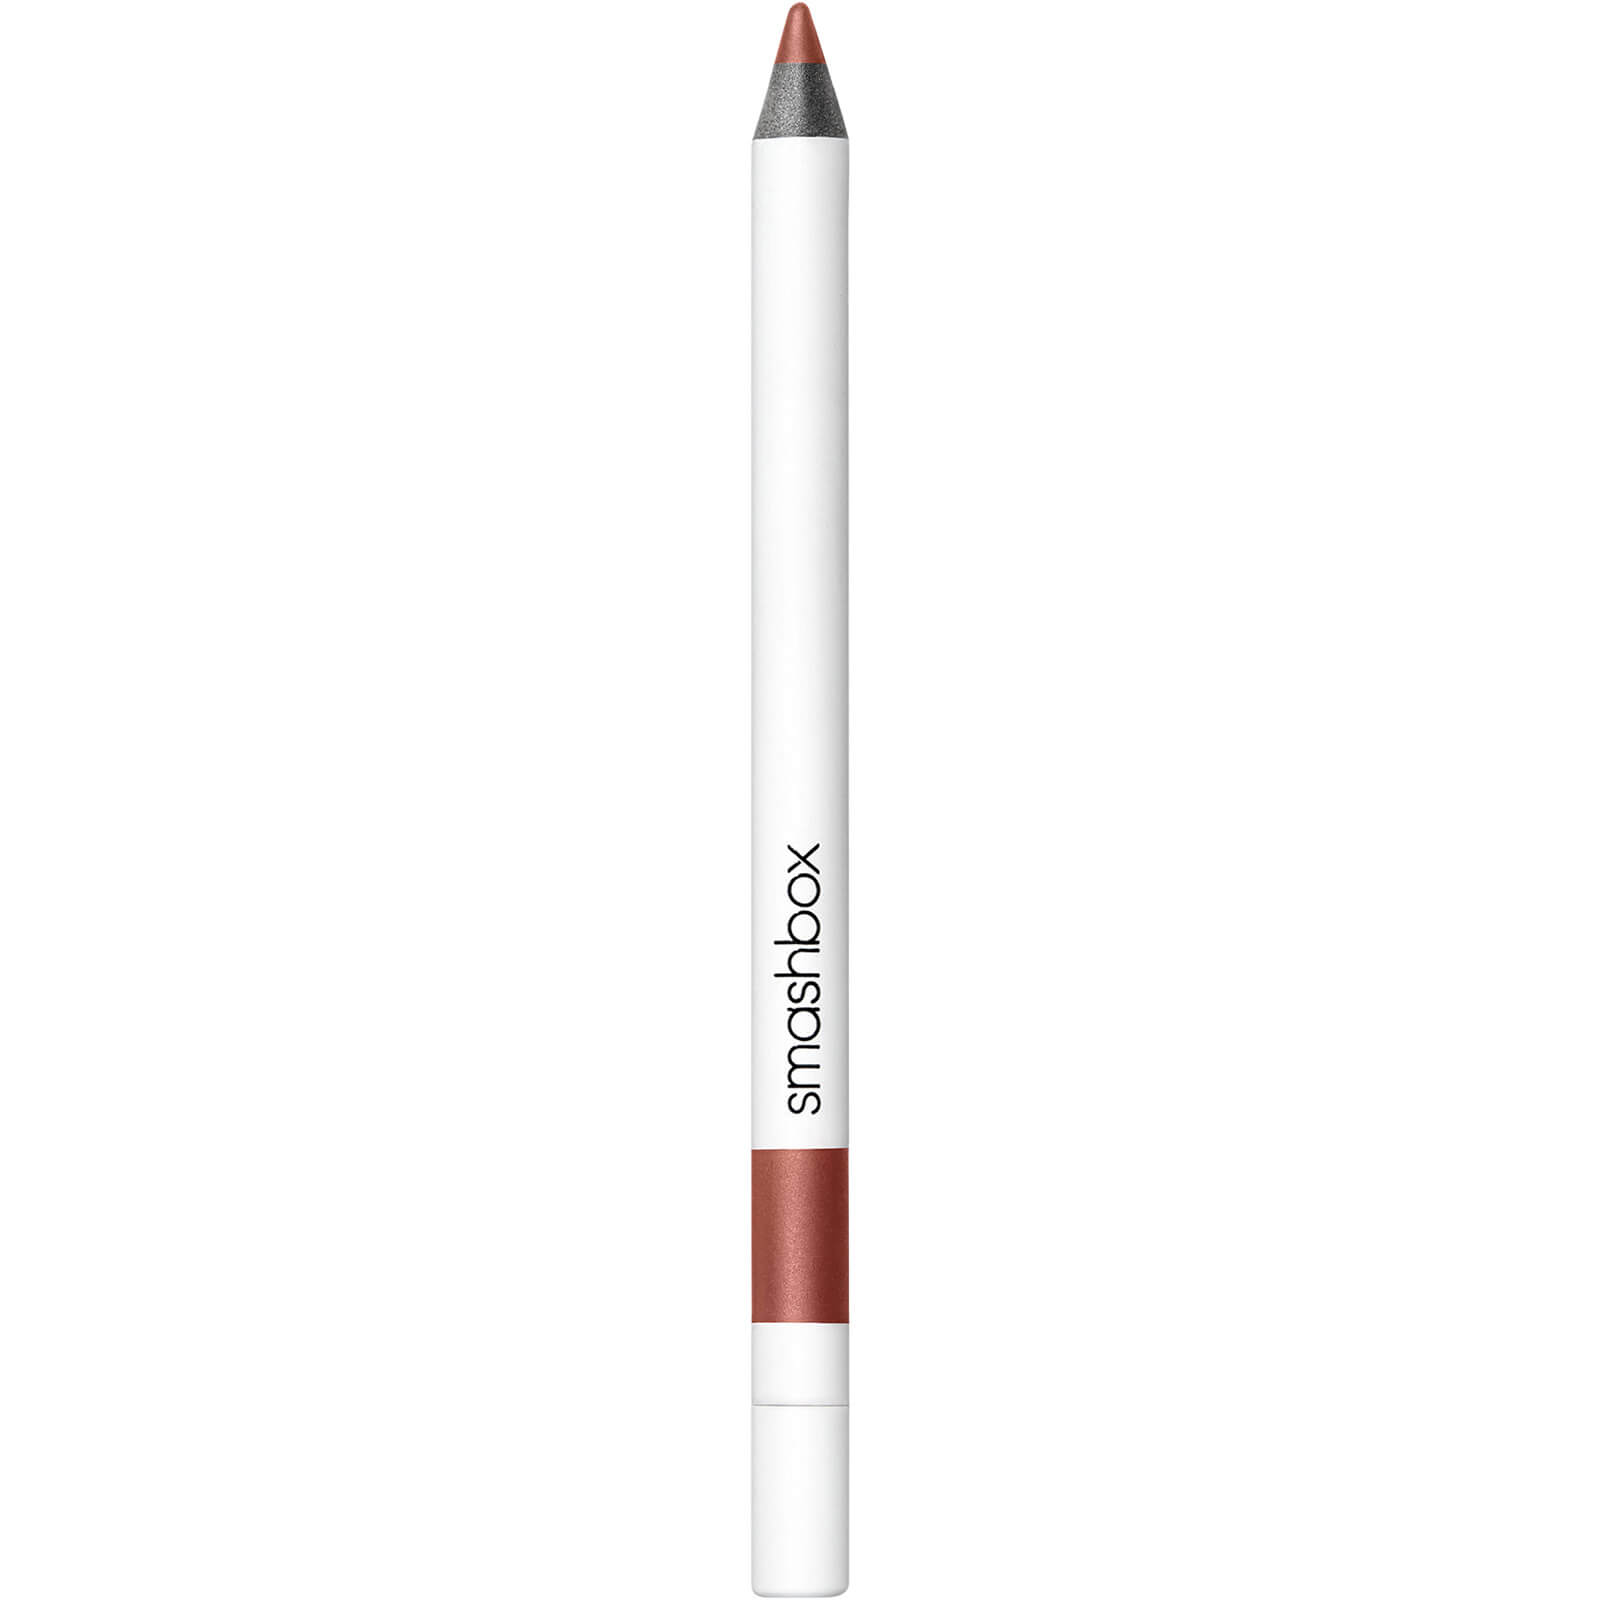 Smashbox Be Legendary Line and Prime Pencil 1.2g (Various Shades) - Honey Brown